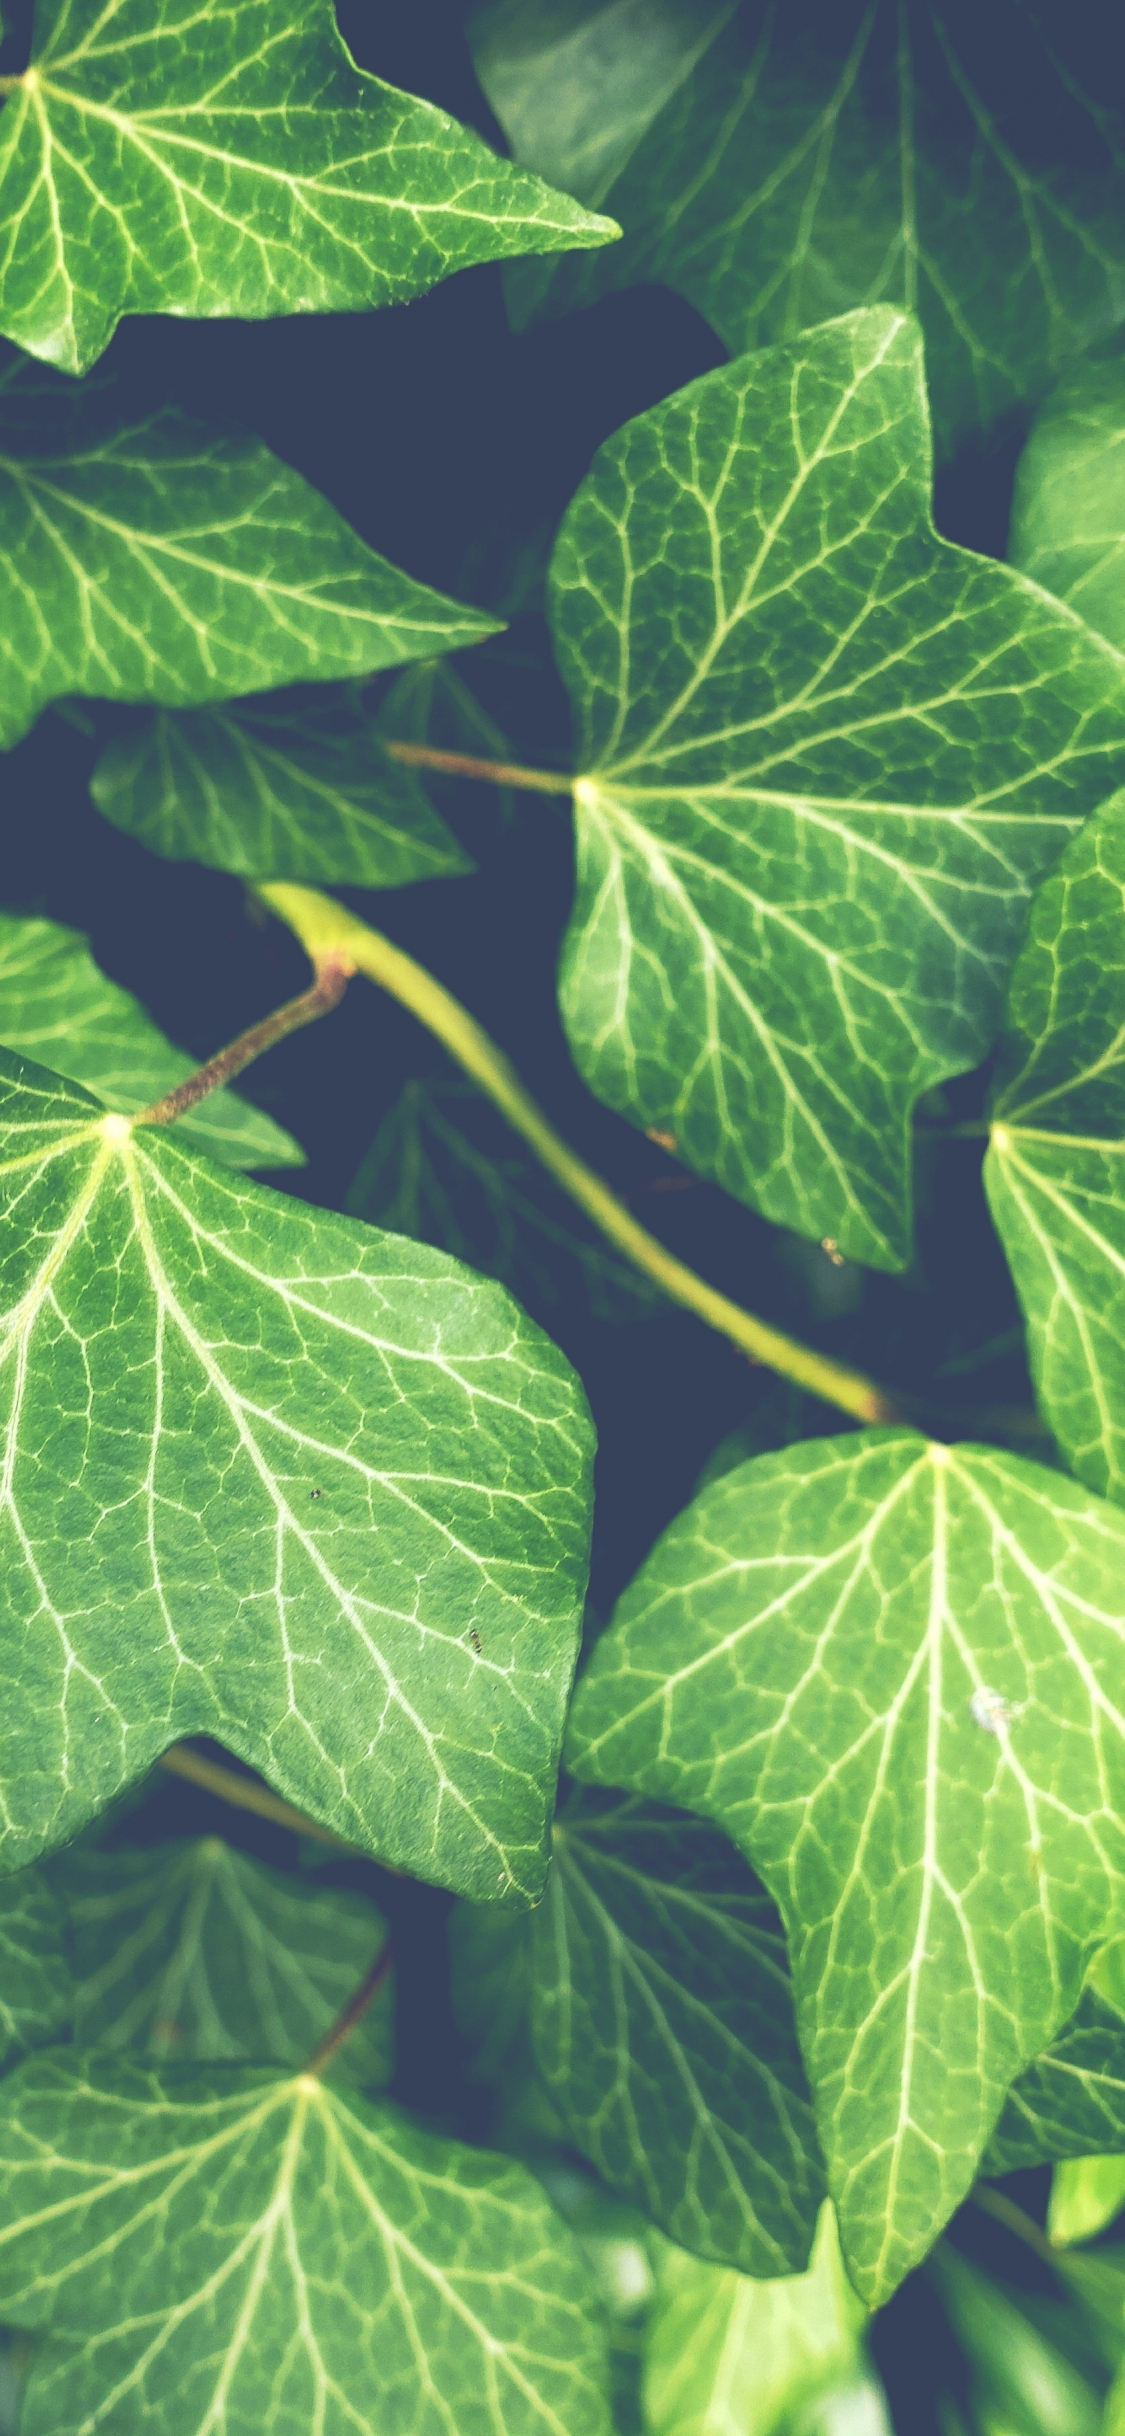 Download 1125x2436 Wallpaper Ivy Plant Green Leaves Close